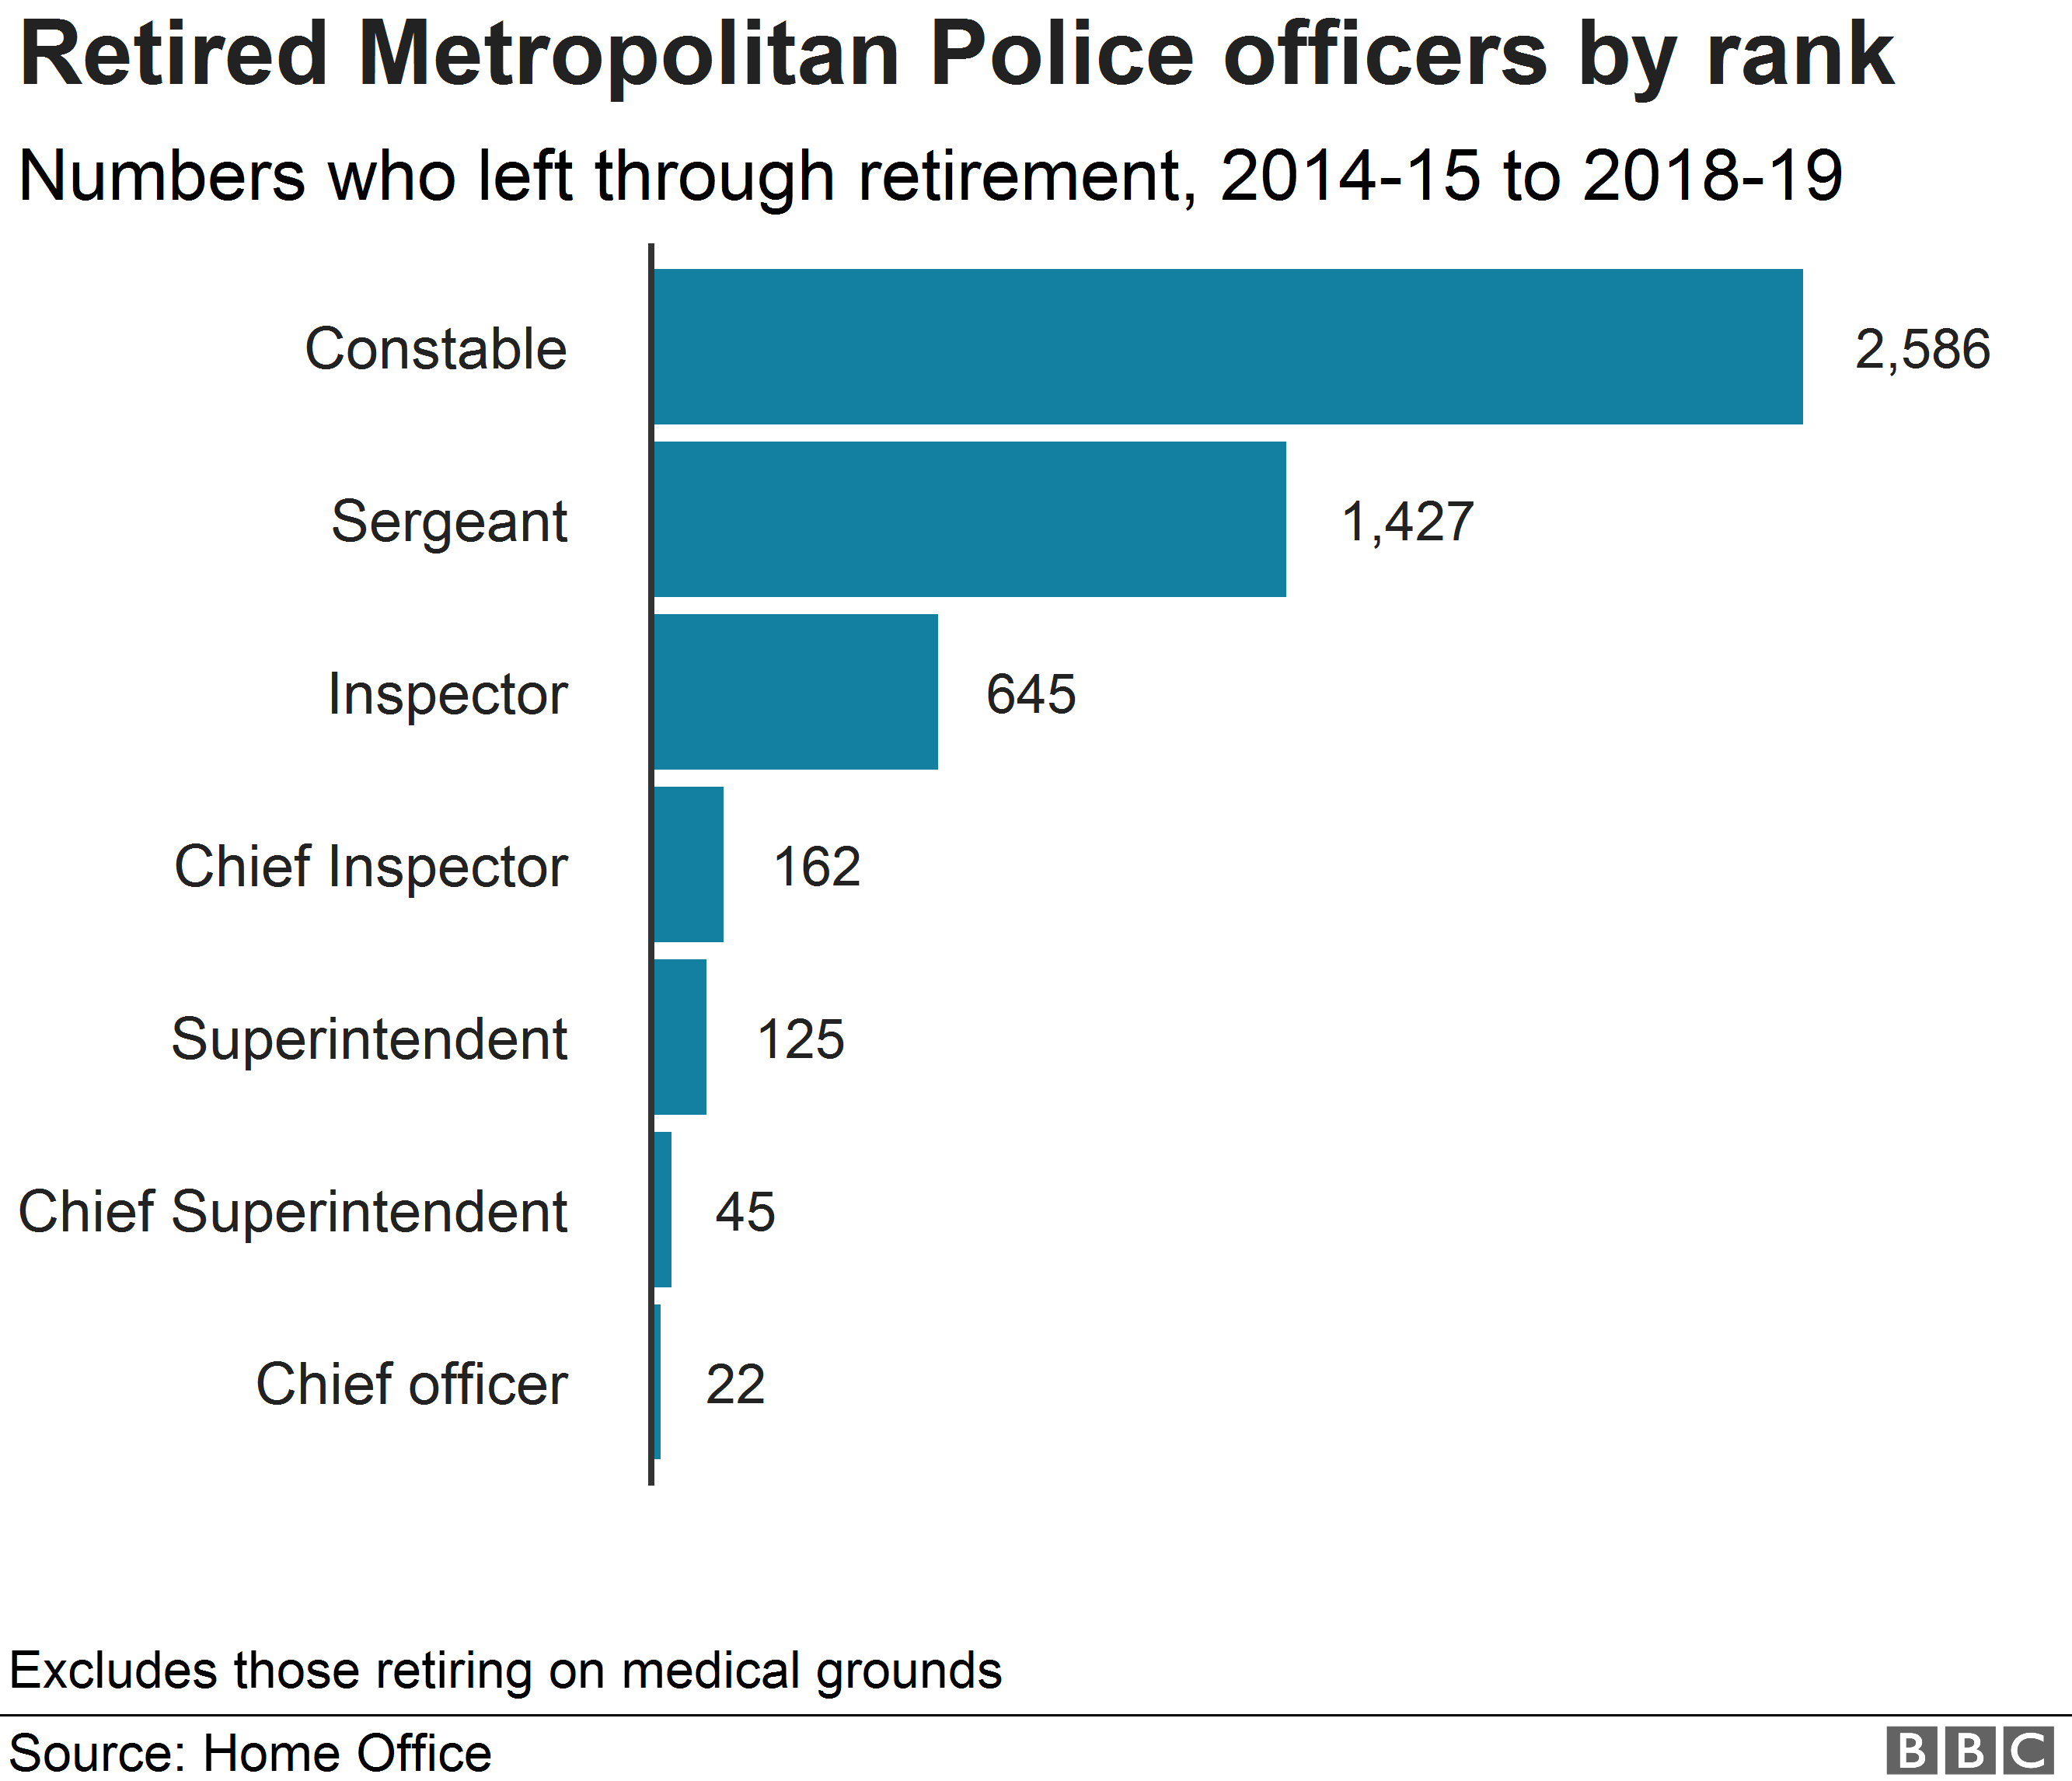 Chart showing numbers of retired police officers in the Met by rank